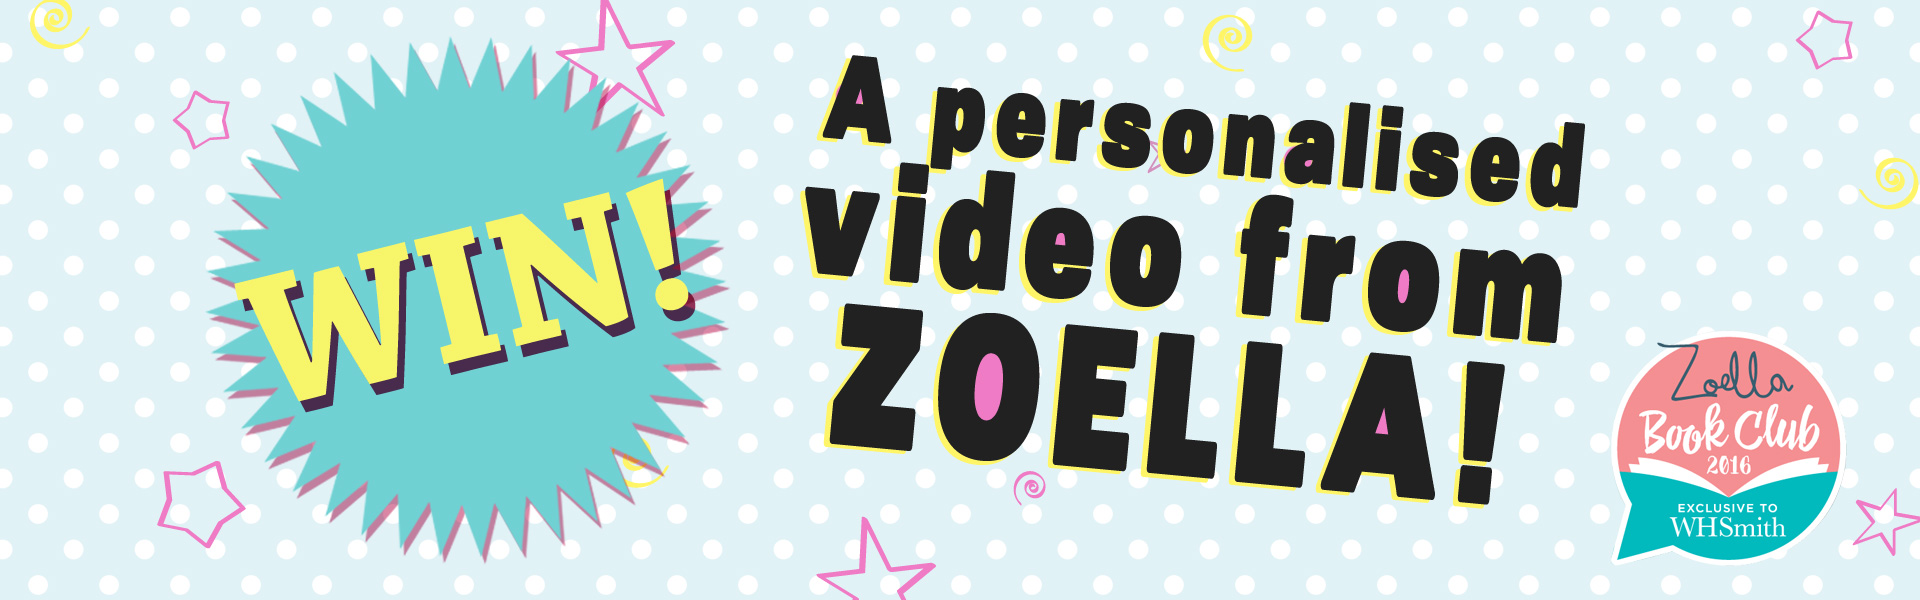 Competition! Win a Personal Video from Zoella!